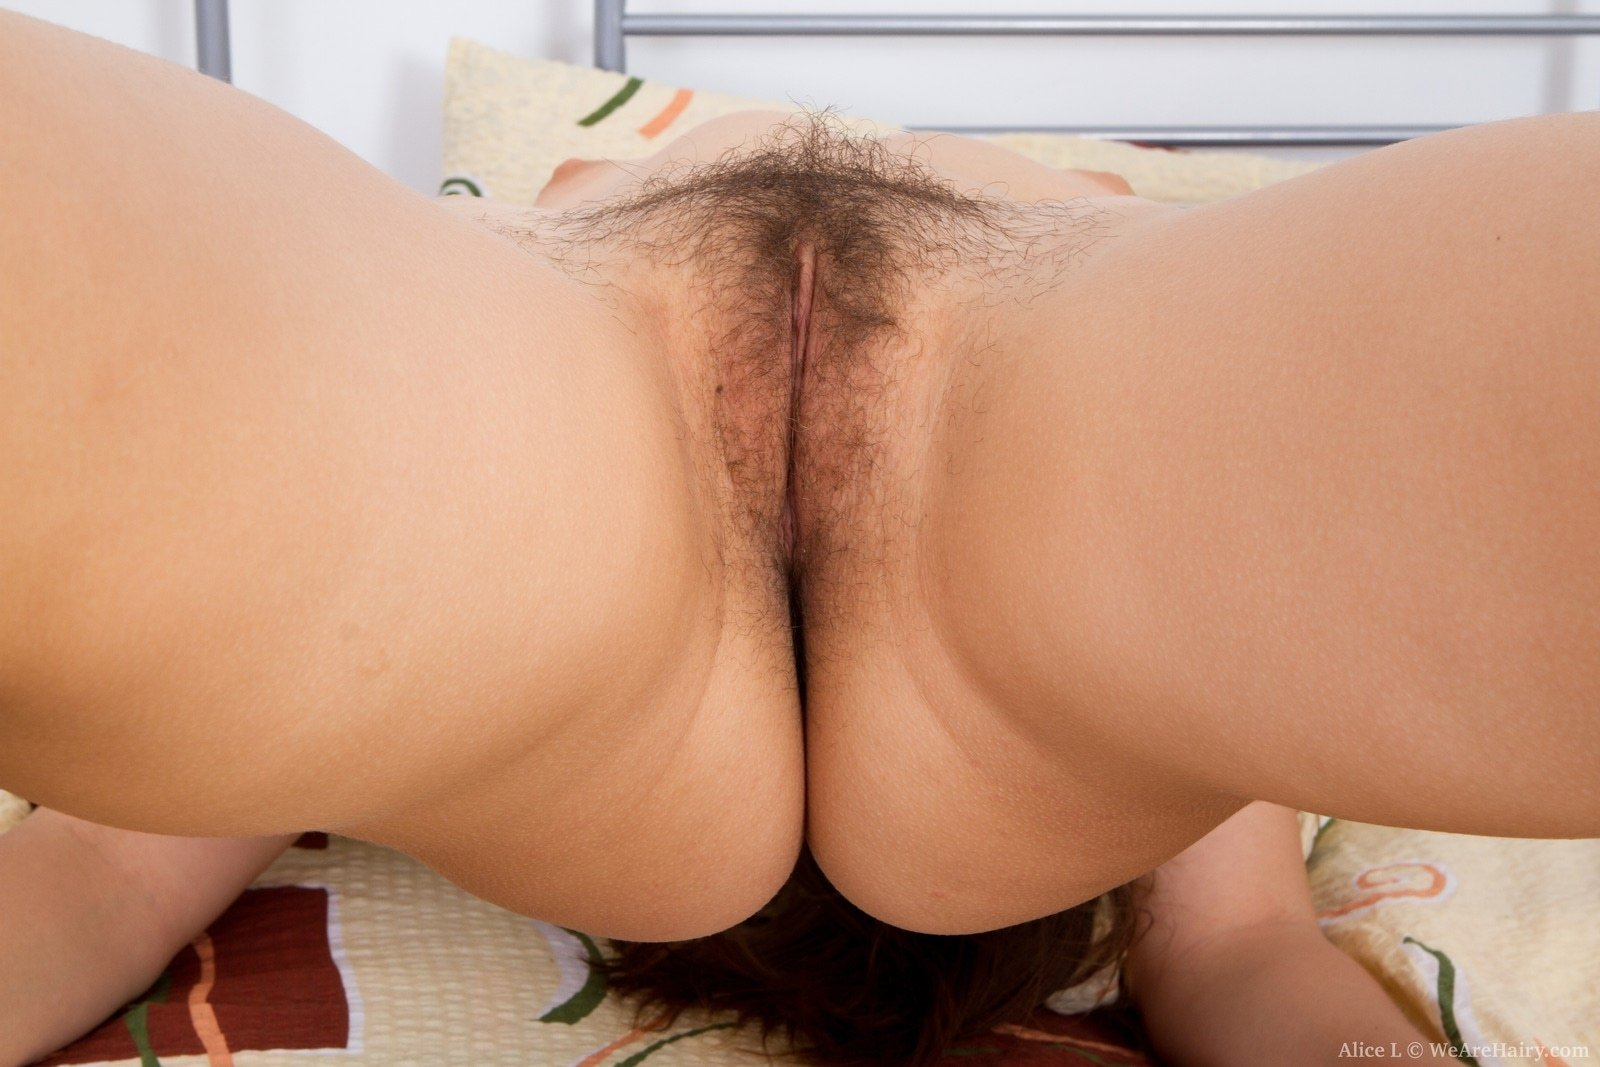 Husband wanks watching wife